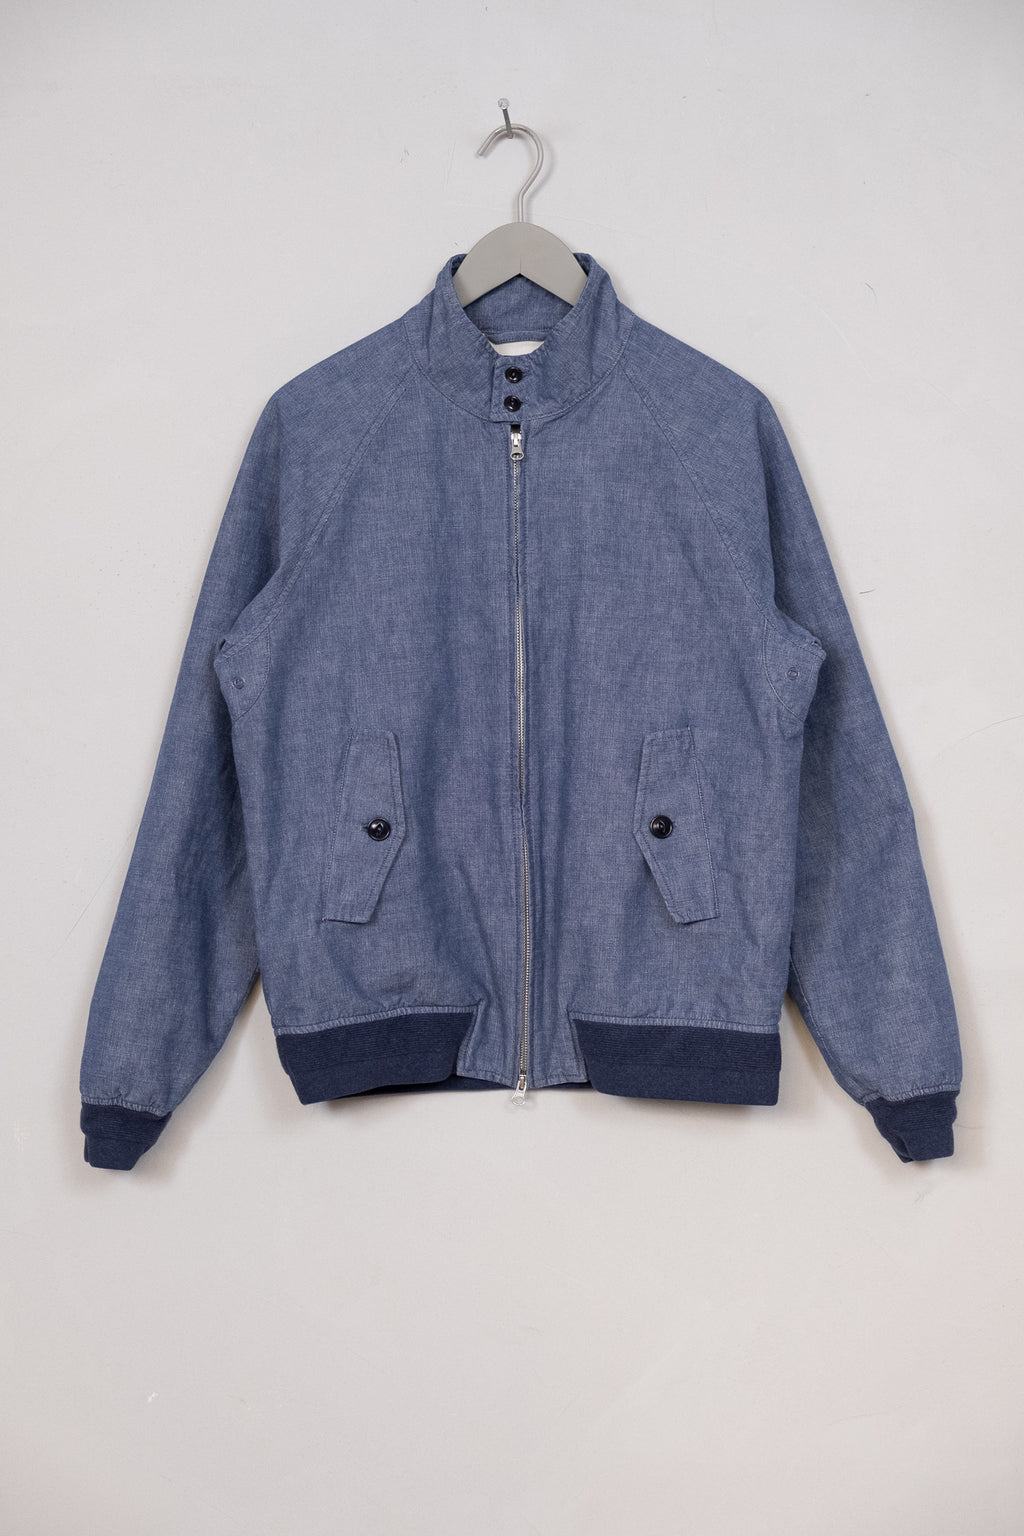 Harrington Jacket Indigo Selvedge Chambray - Enzyme